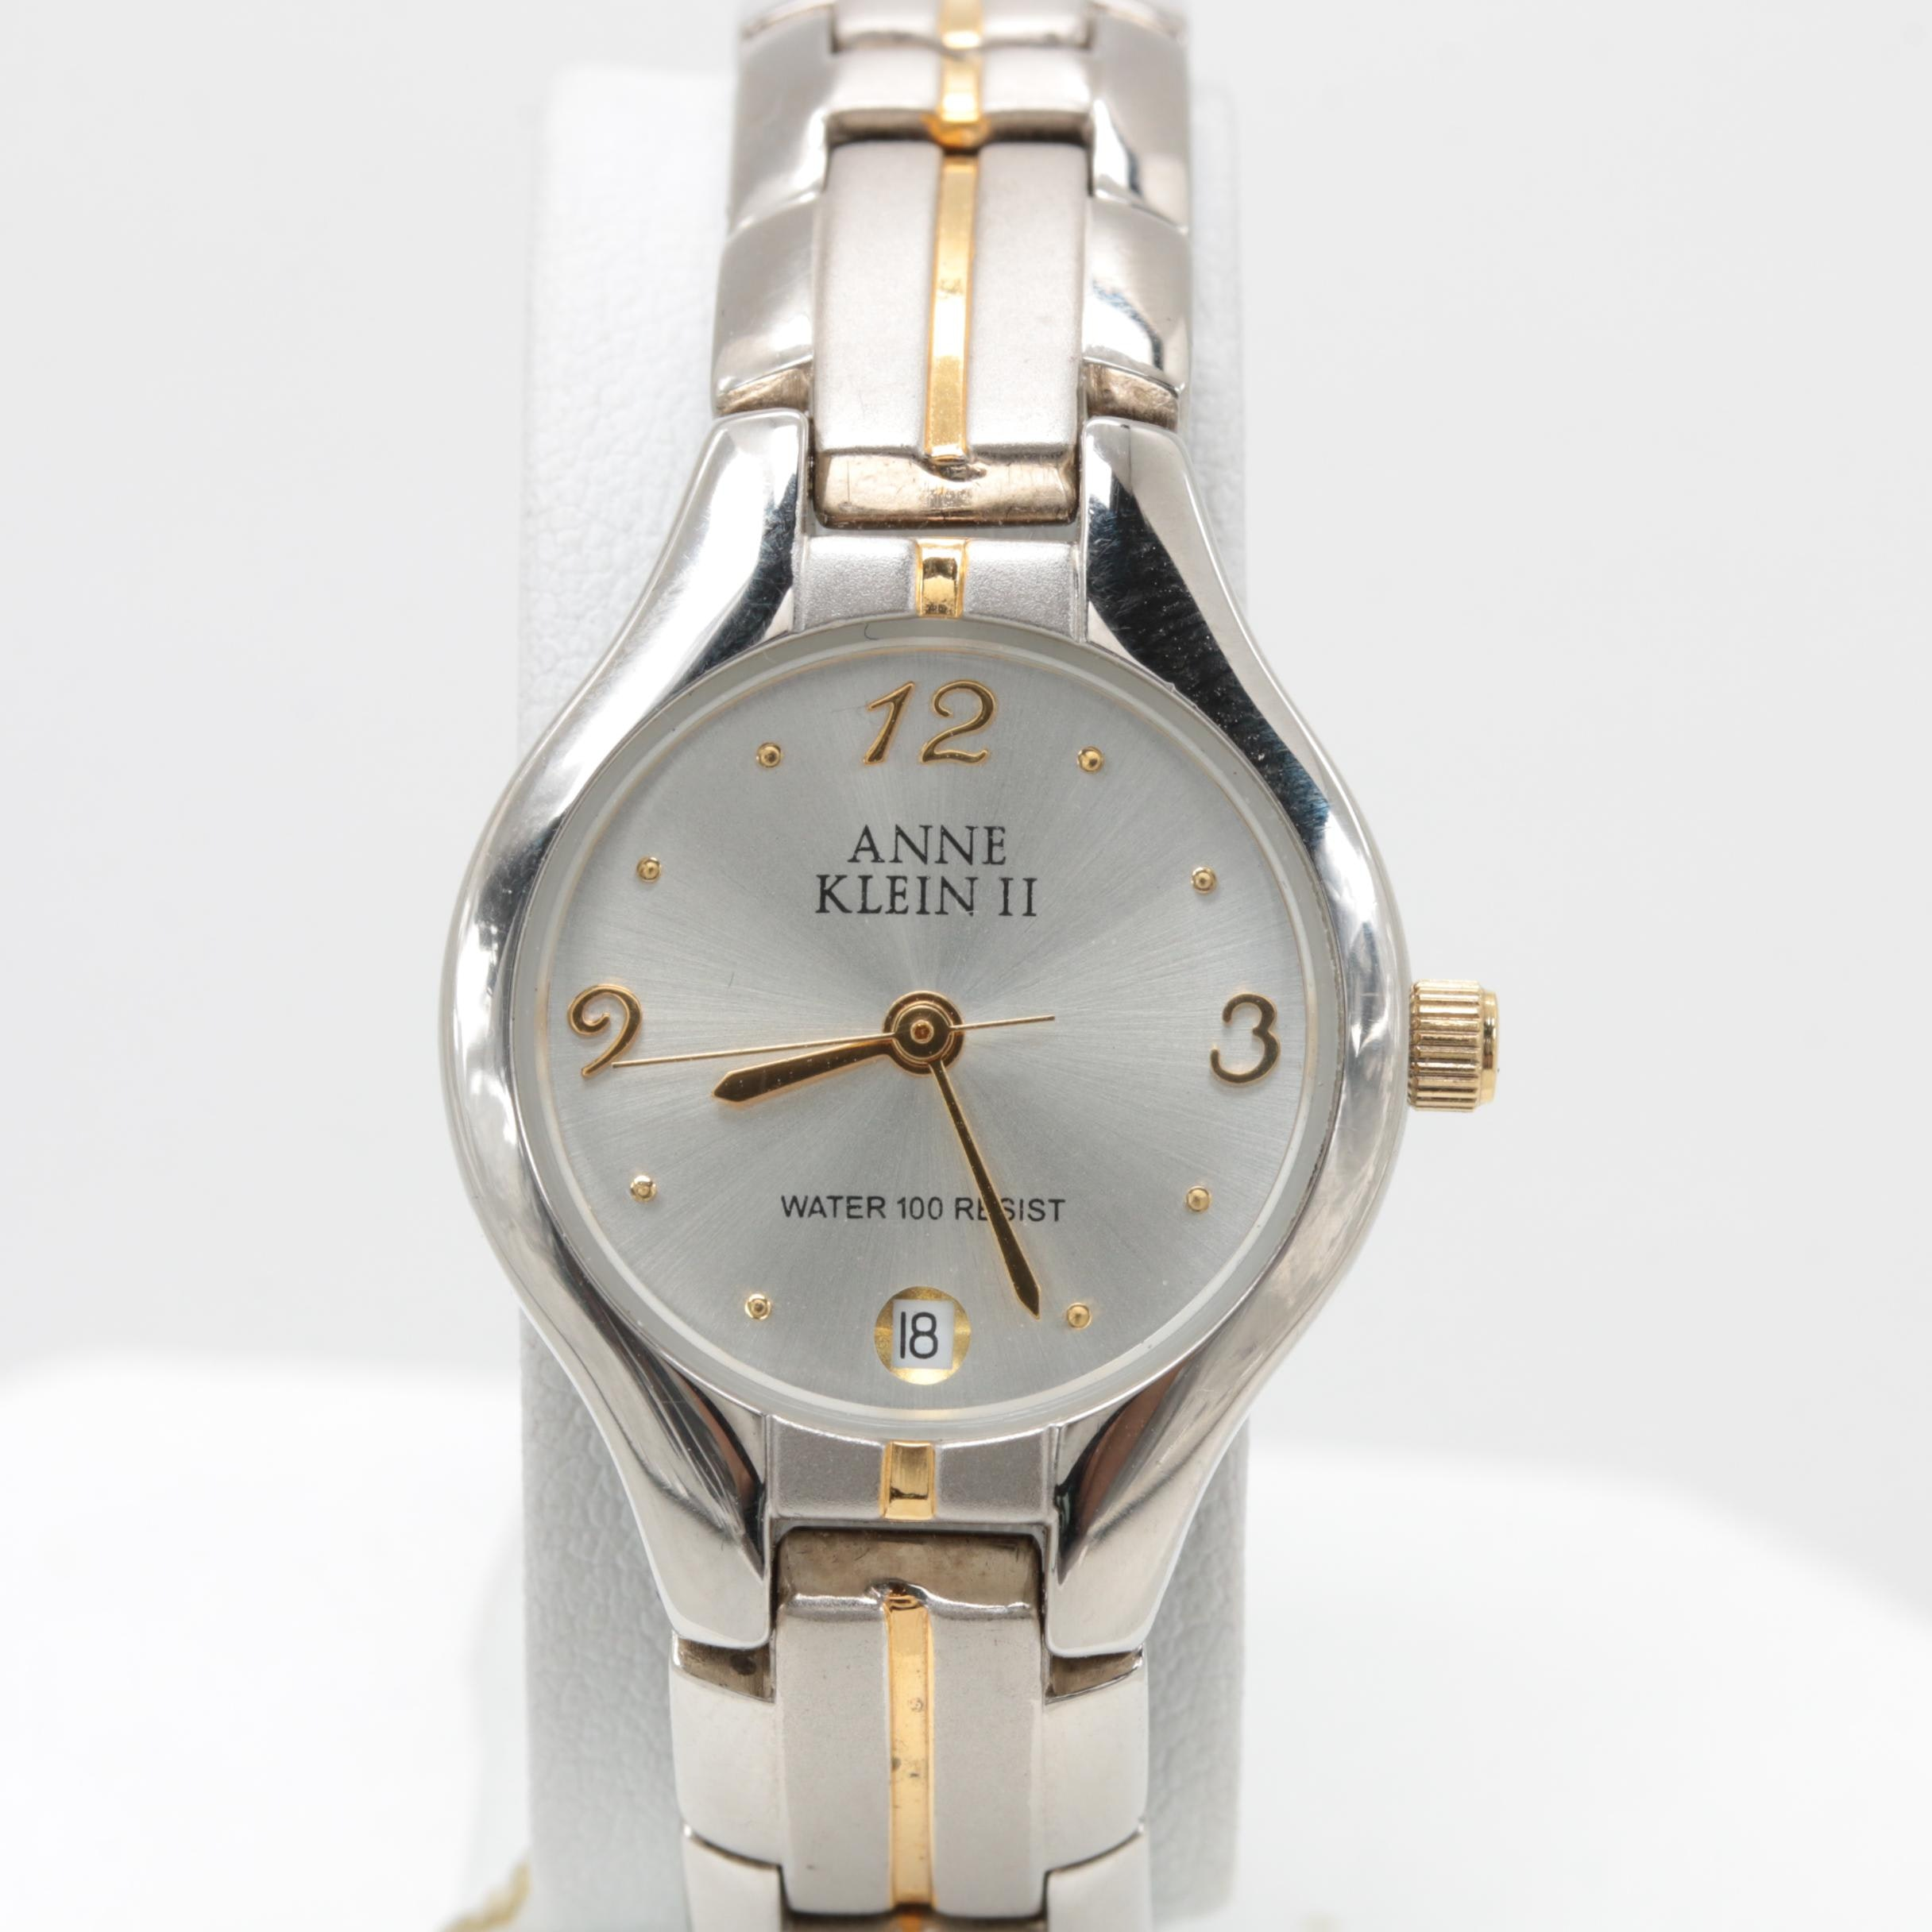 Anne Klein II Silver and Gold Tone Wristwatch